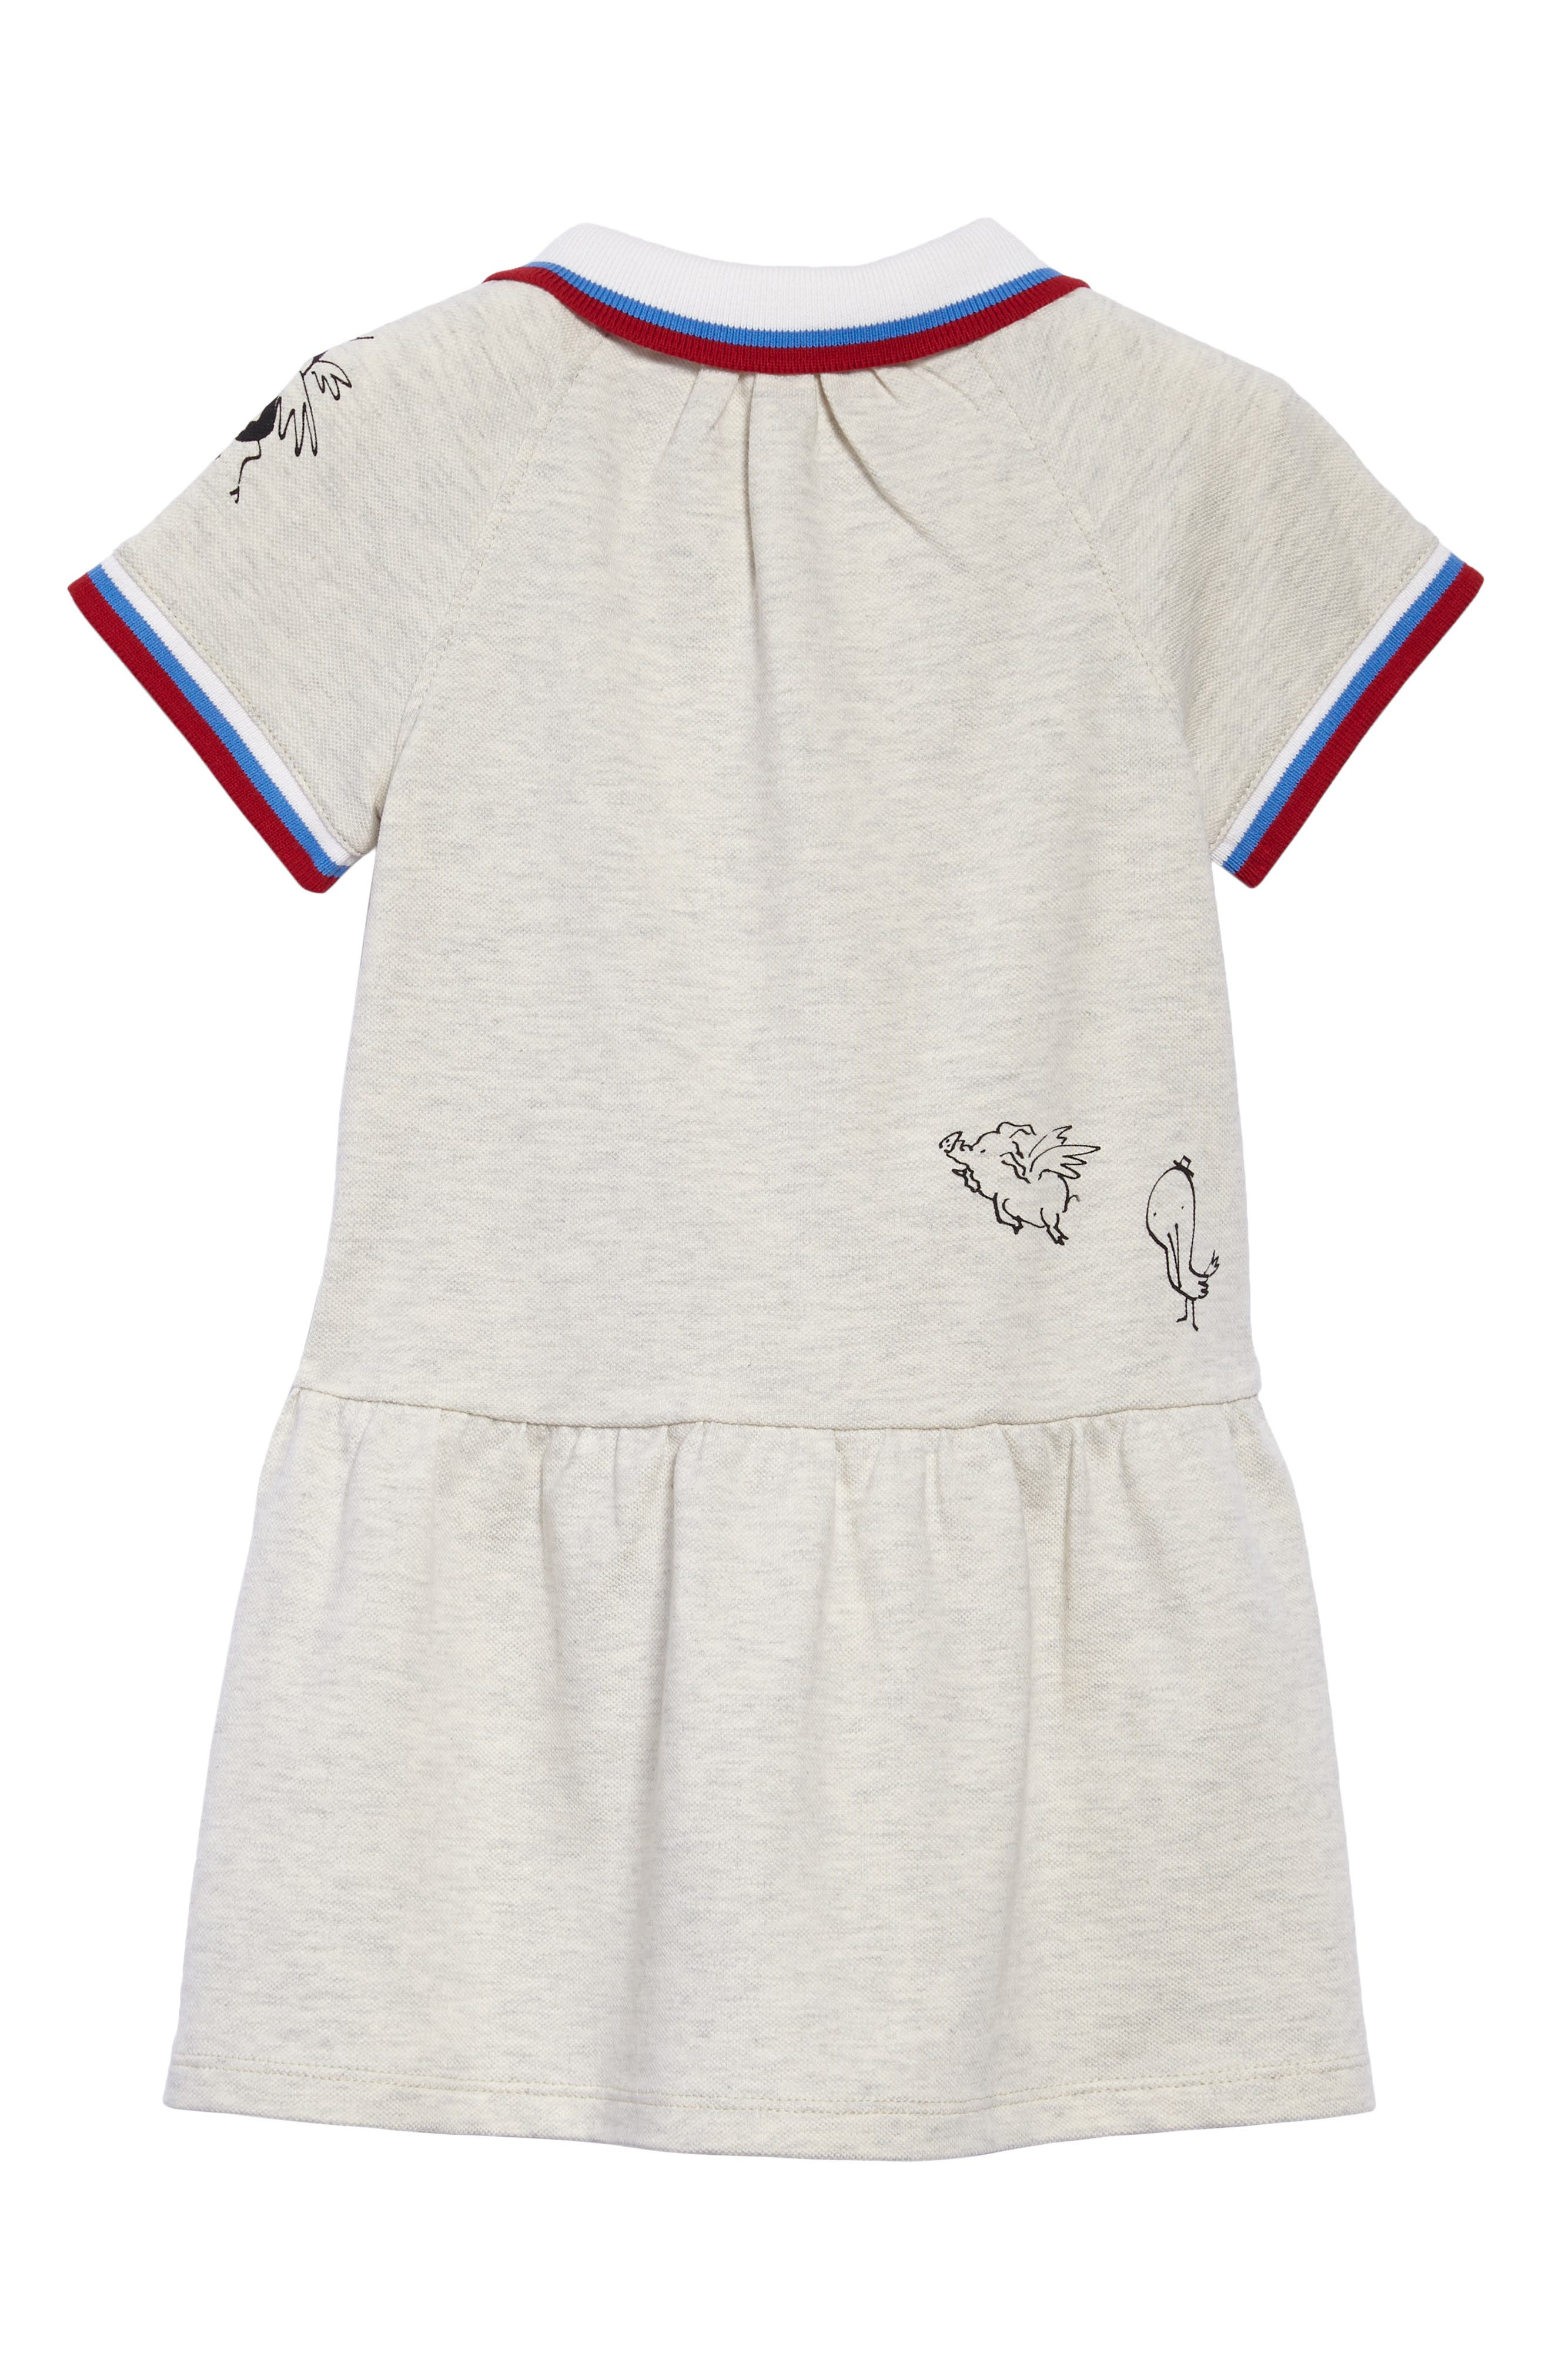 Dresses Burberry for Kids Clothing & Accessories